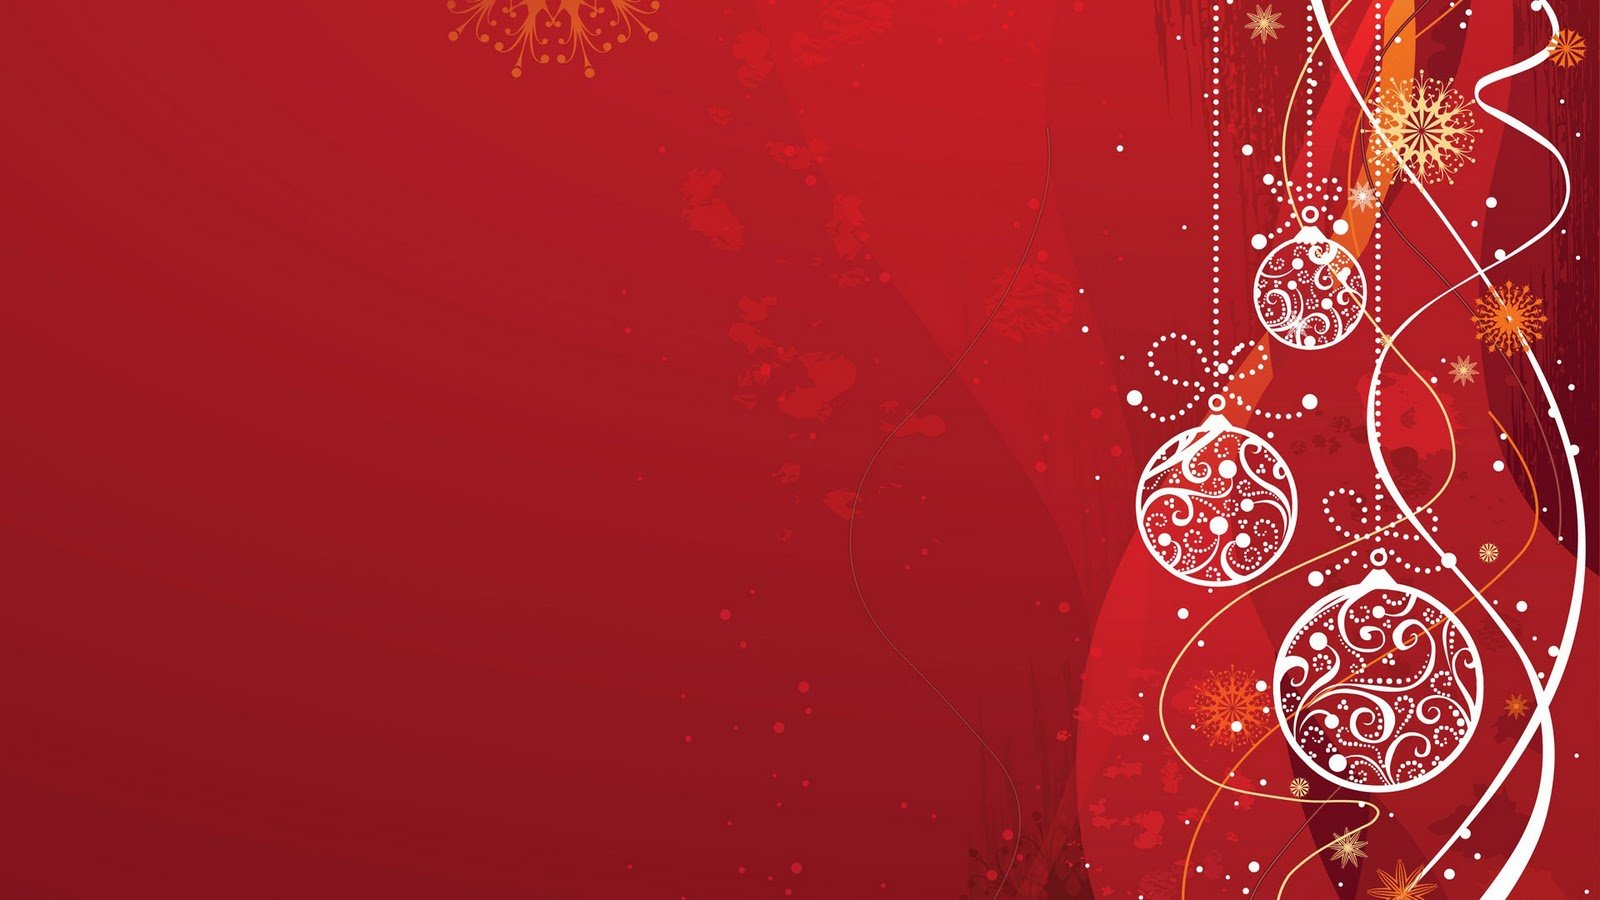 Christmas Backgrounds HD | Wallpapers9